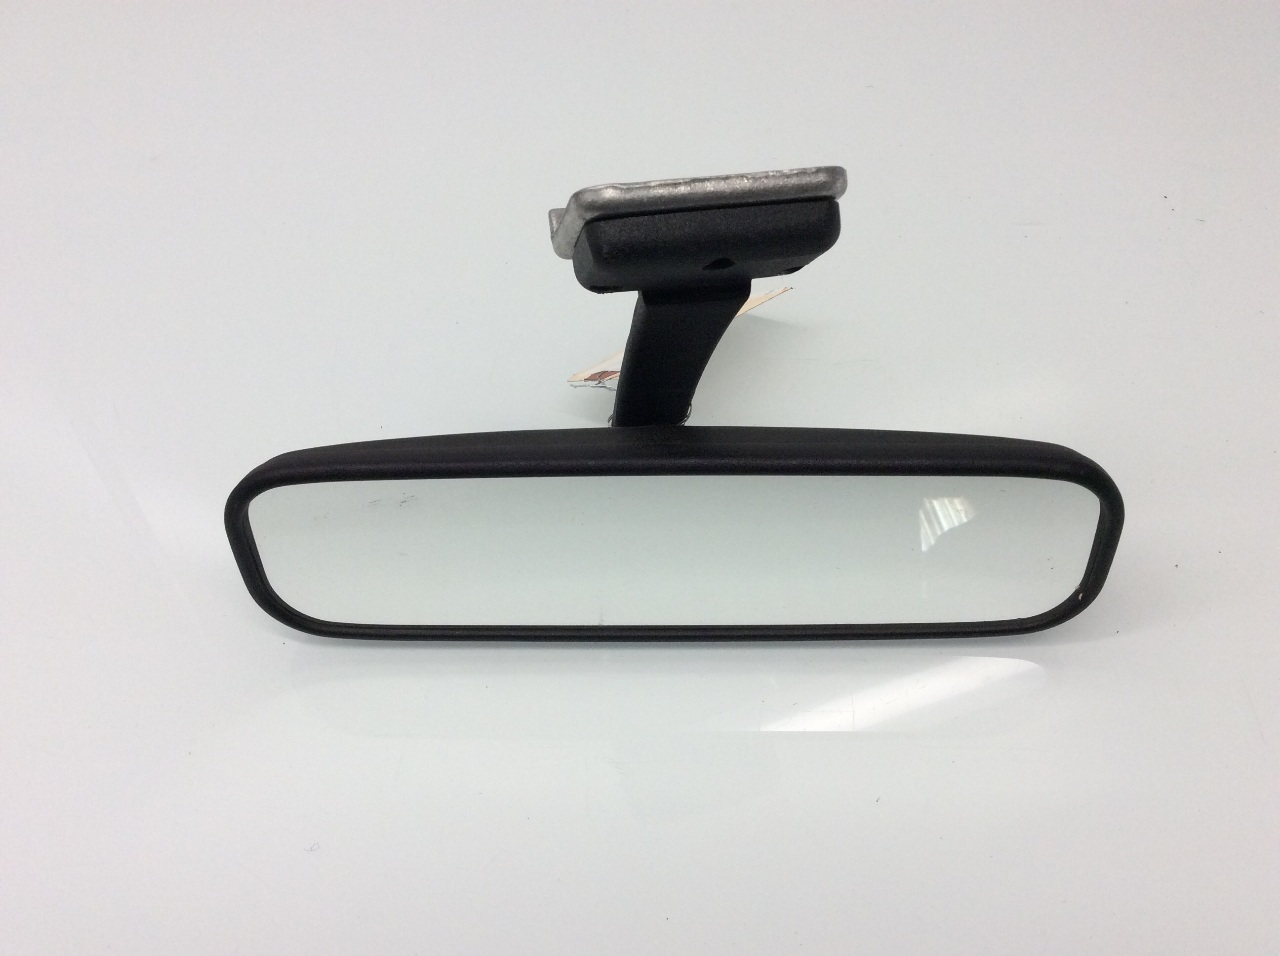 1998 1999 2000 2001 2002 2003 Saab 9-3 inside rear view mirror 4603106